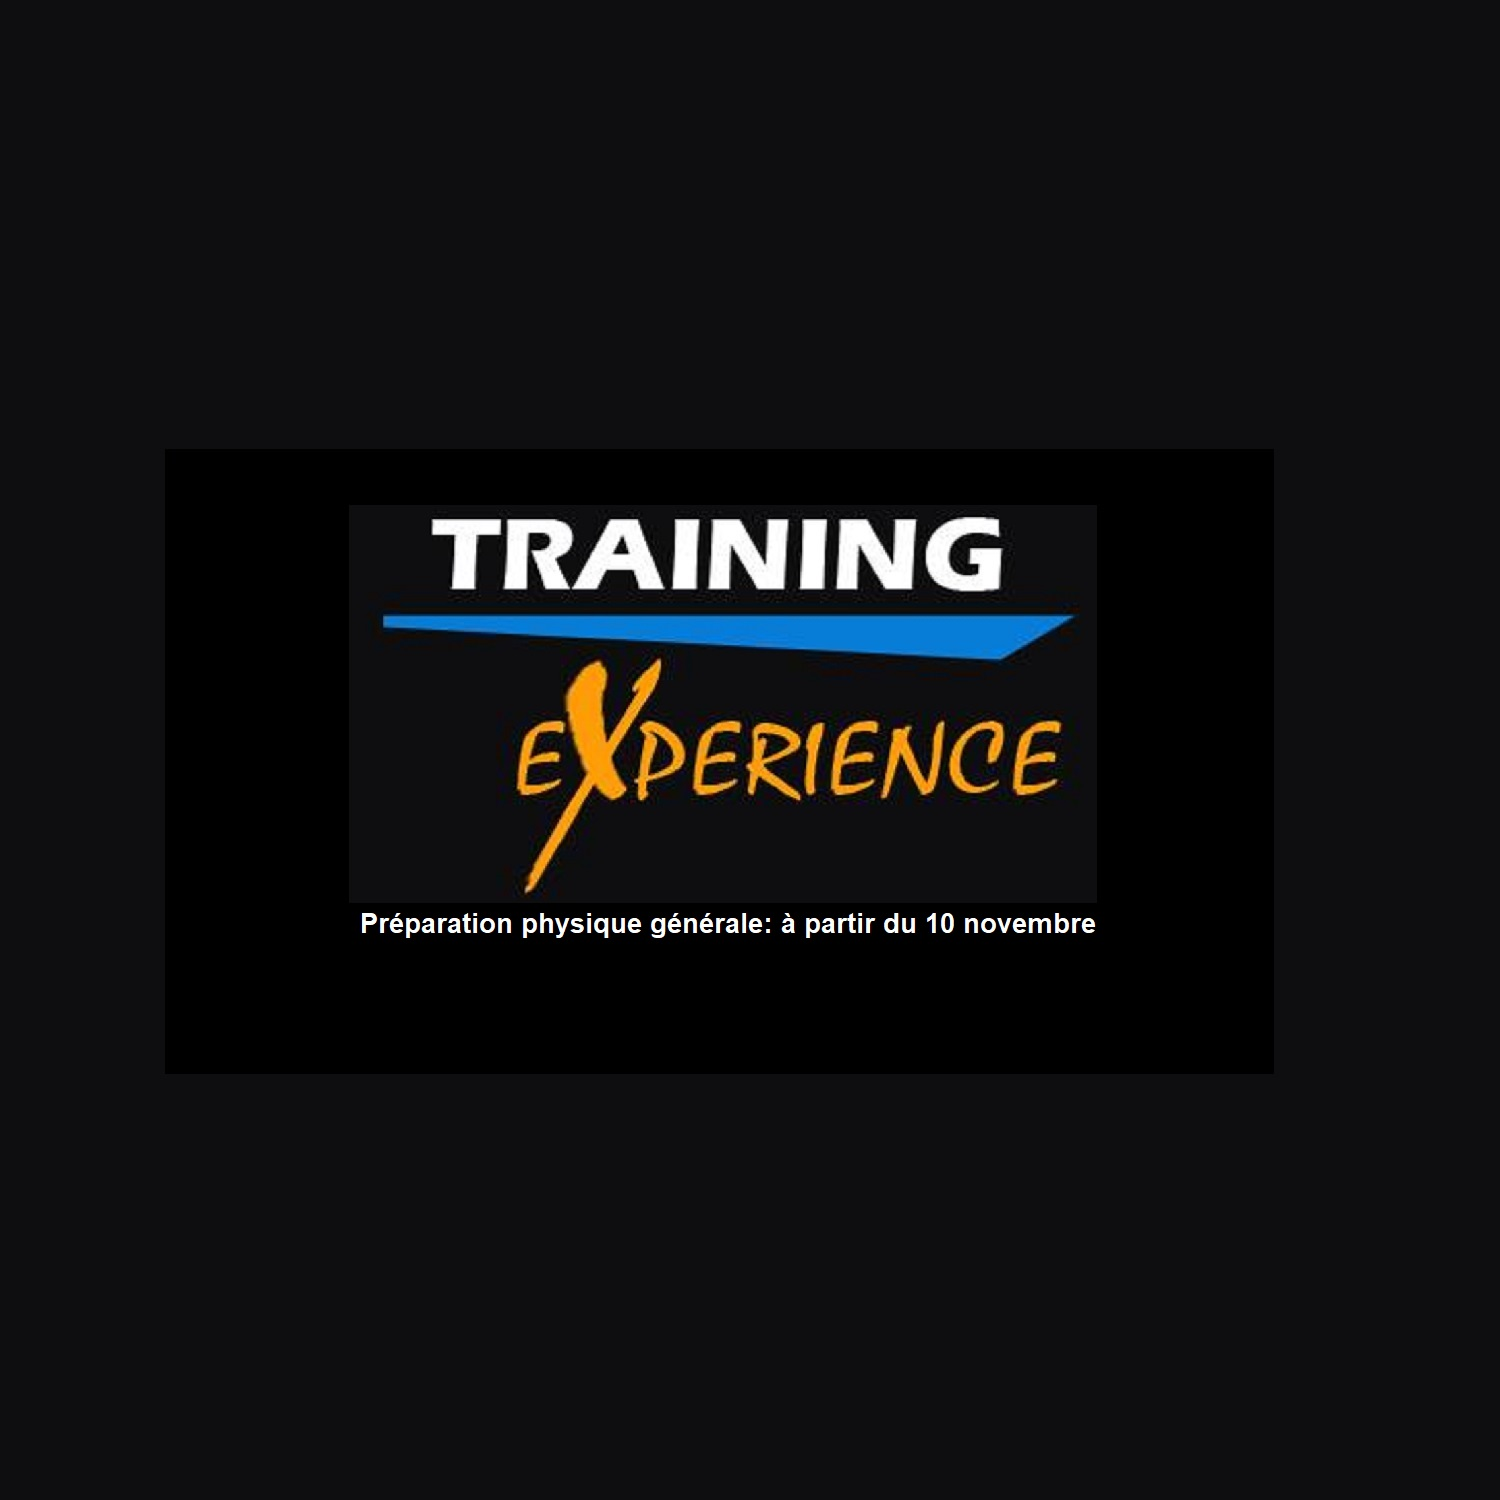 trainingexperiencelogo